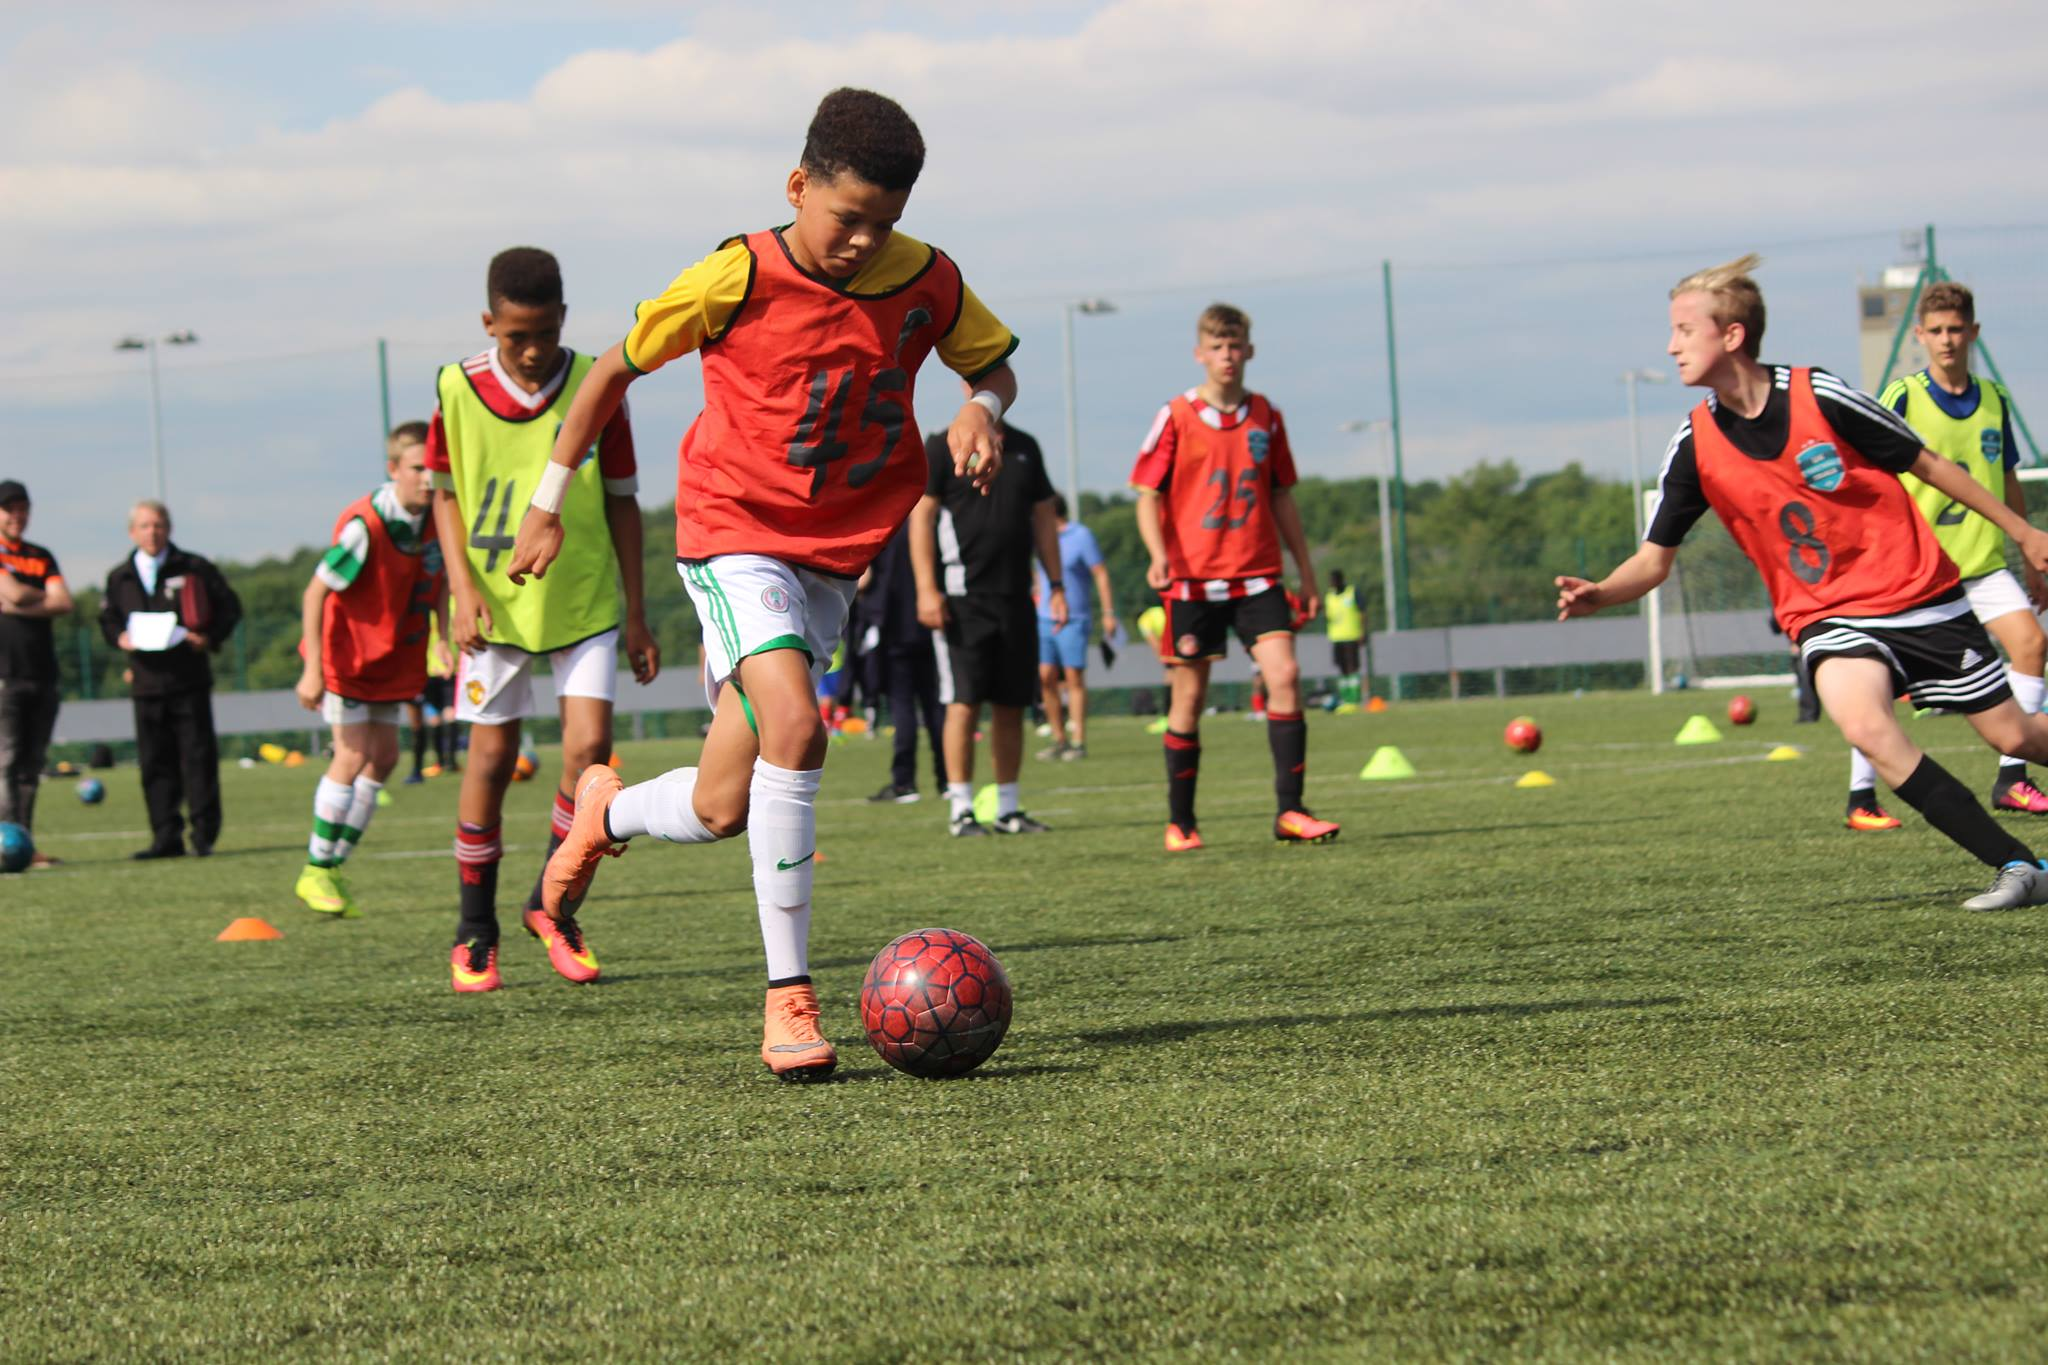 Manchester Football Trial PM - Ages 15-28 - August 30th -  HURRY, 5 SPACES LEFT AT THIS PRICE!